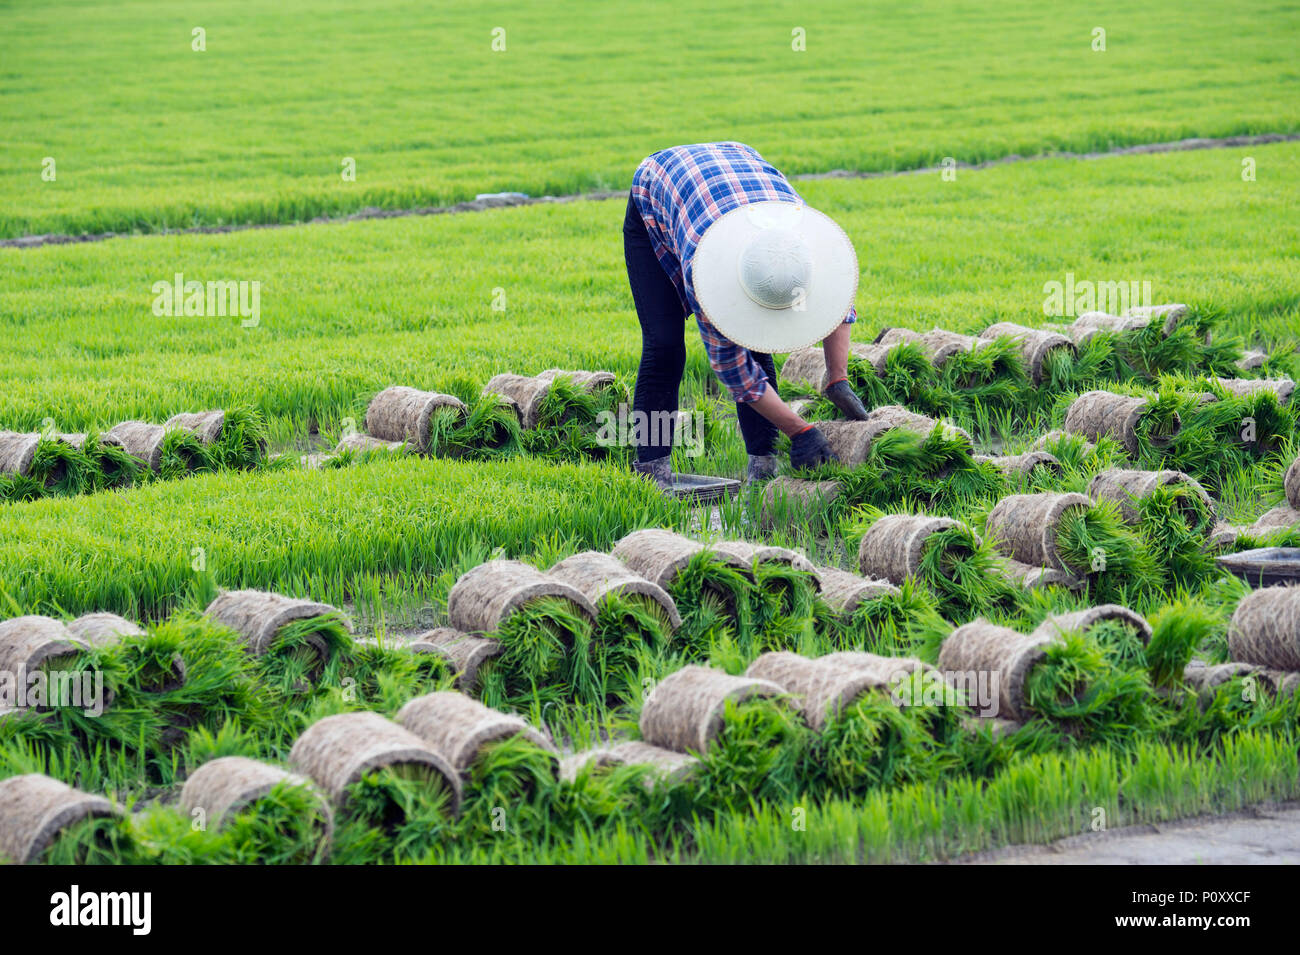 Nantong China S Jiangsu Province 10th June 2018 A Farmer Works In The Rice Fields In Hai An City East China S Jiangsu Province June 10 2018 Farmers Are Busy With Farm Work On The